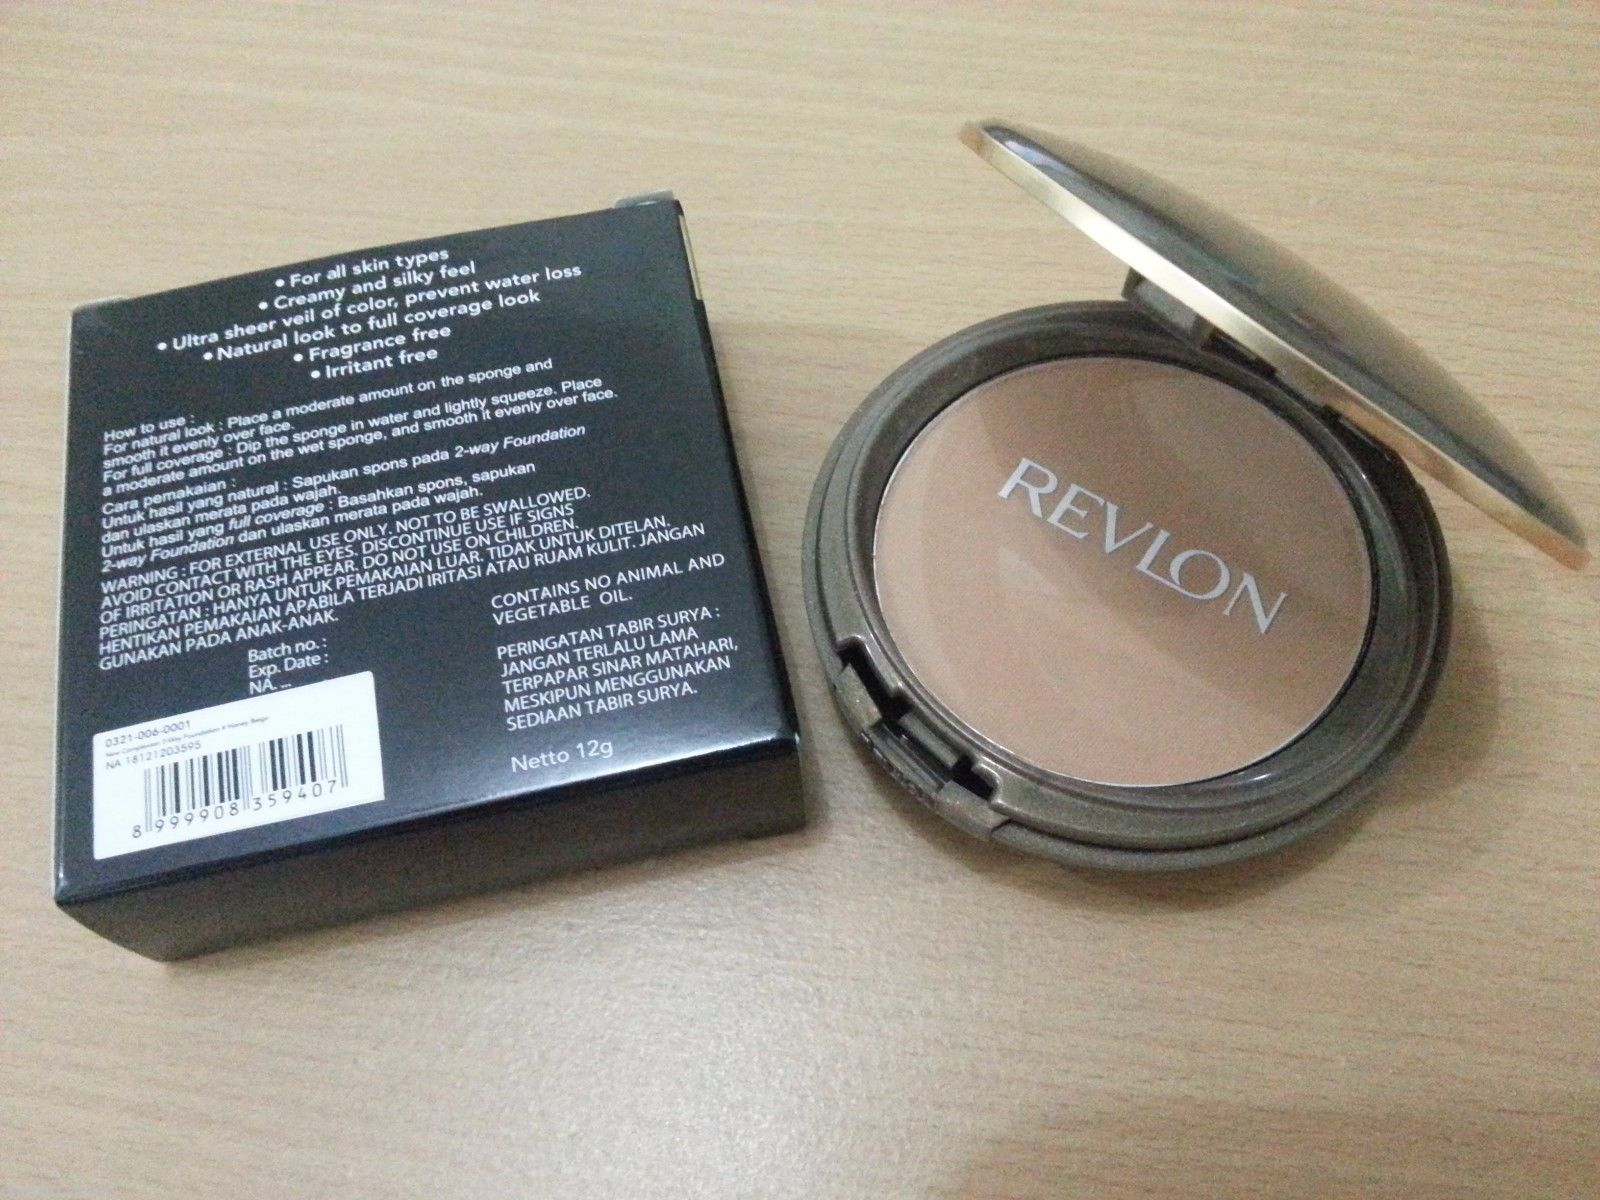 Revlon New Complexion Two Way Foundation Honey Beige Best Buy Source Revlon Makeup New Complexion